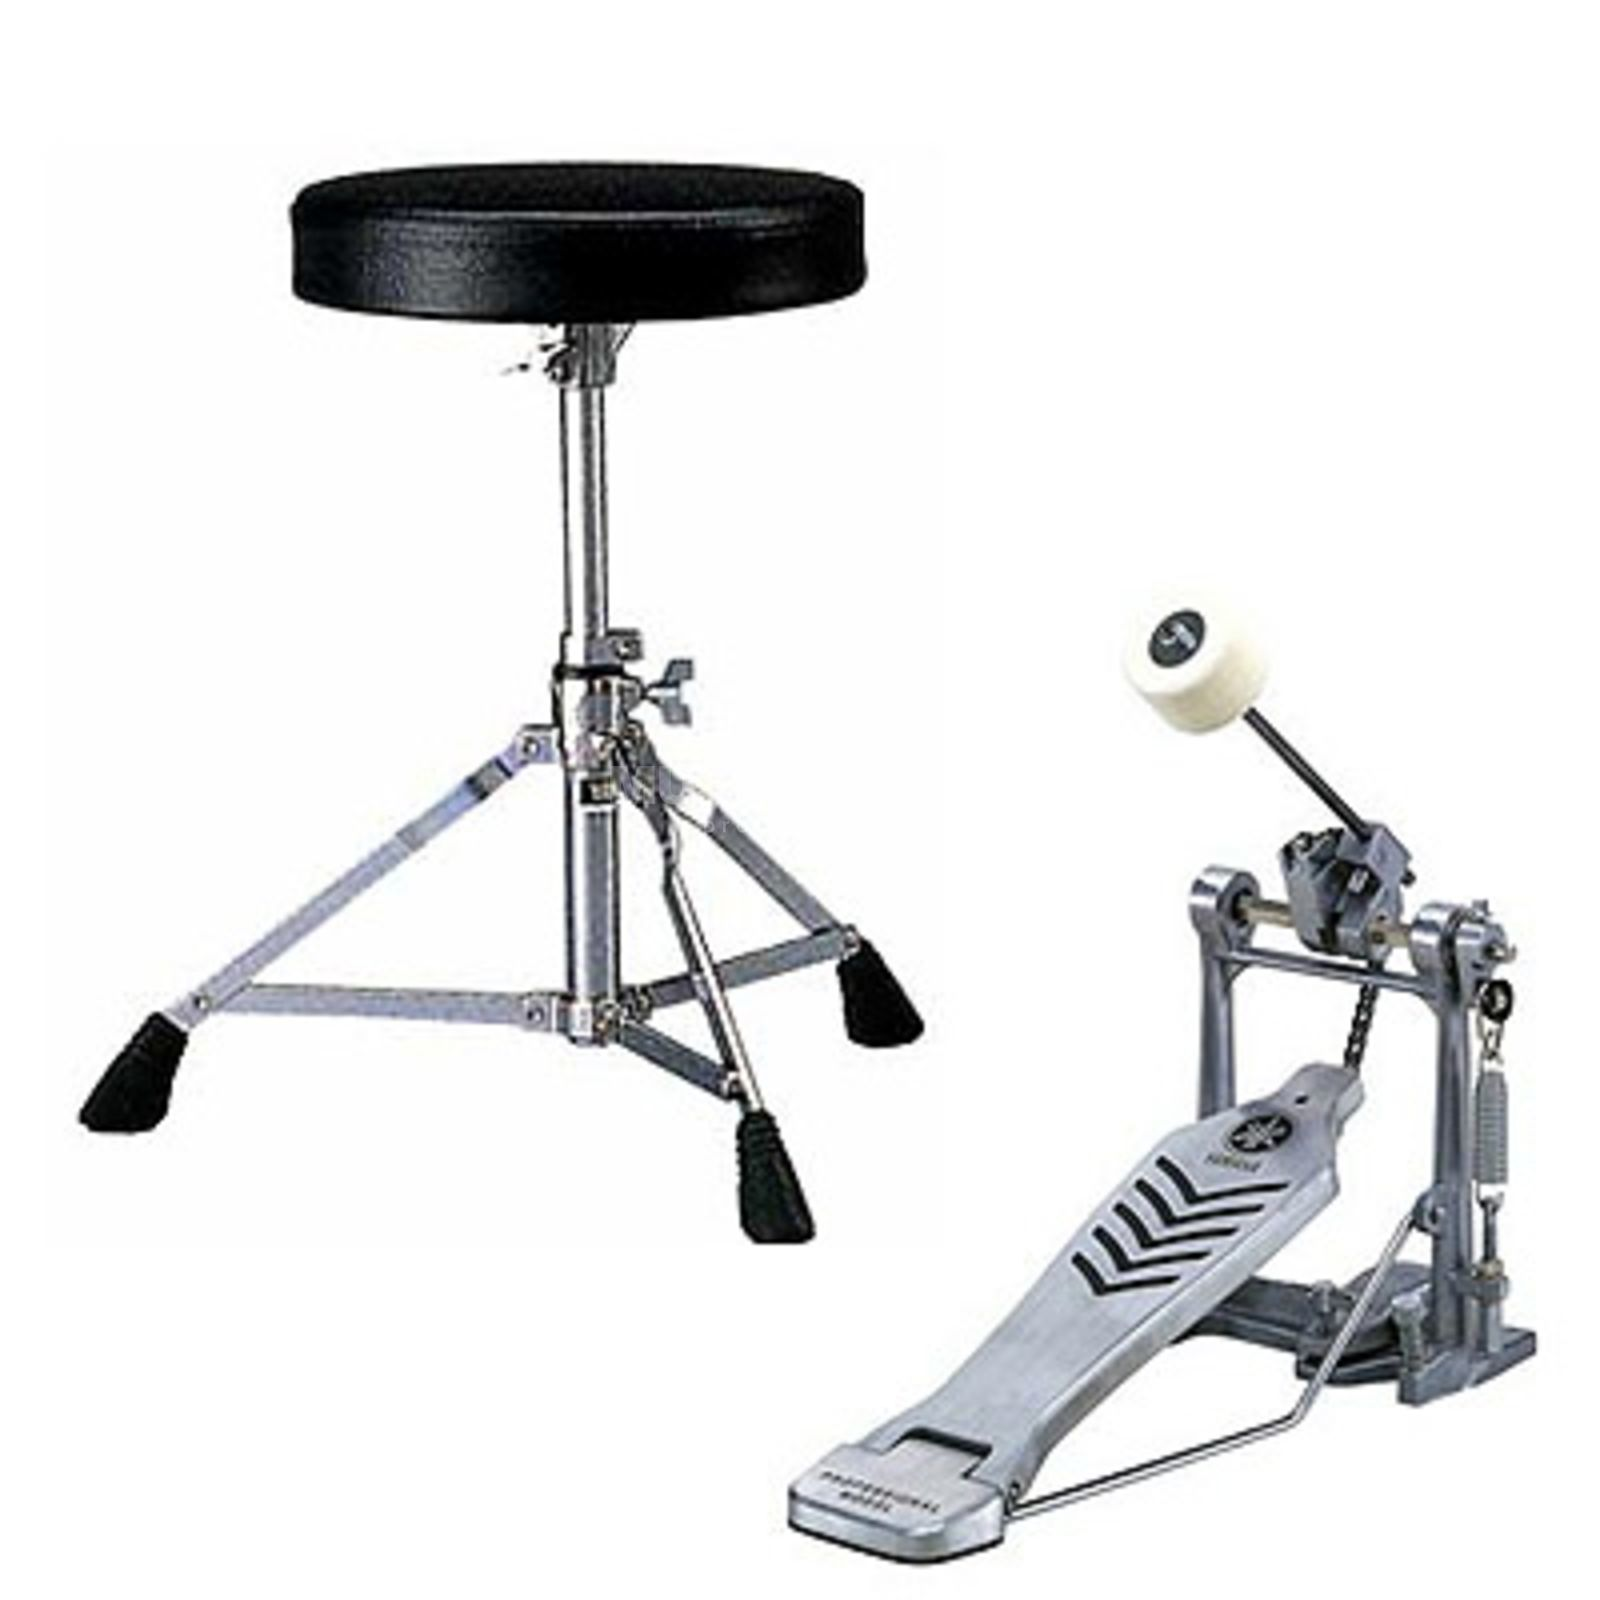 Yamaha Throne & Footpedal FPDS2A, DS550U + FP6110 Product Image